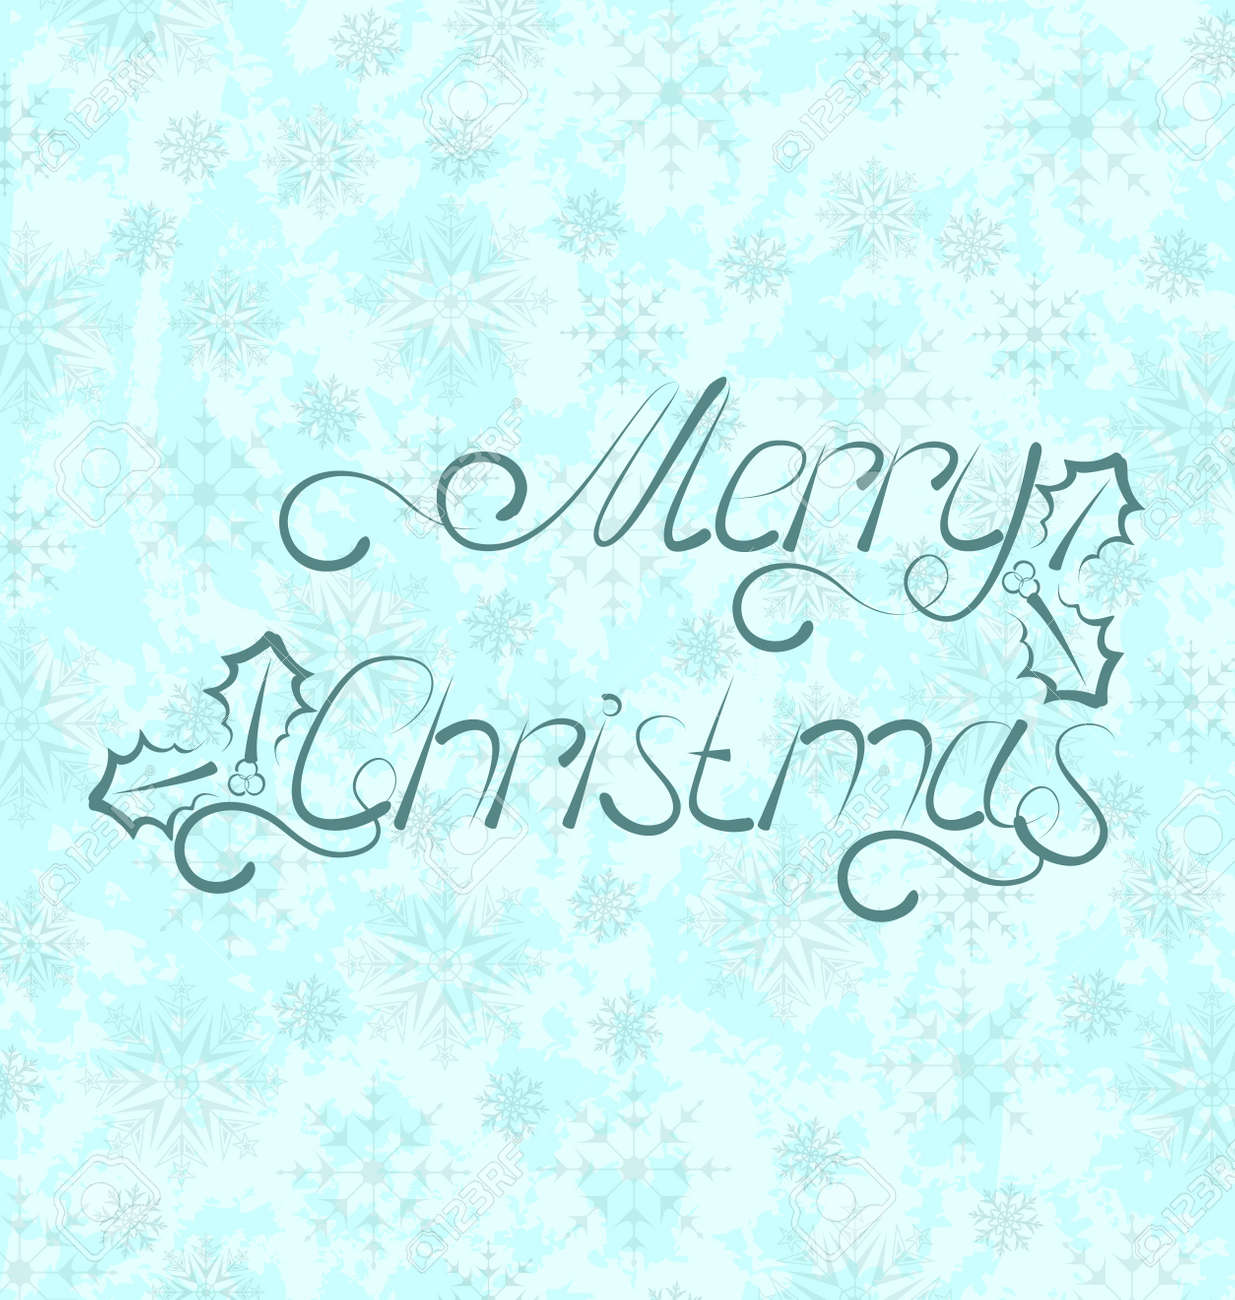 Illustration calligraphic Christmas lettering, snowflakes texture - vector Stock Photo - 22096368